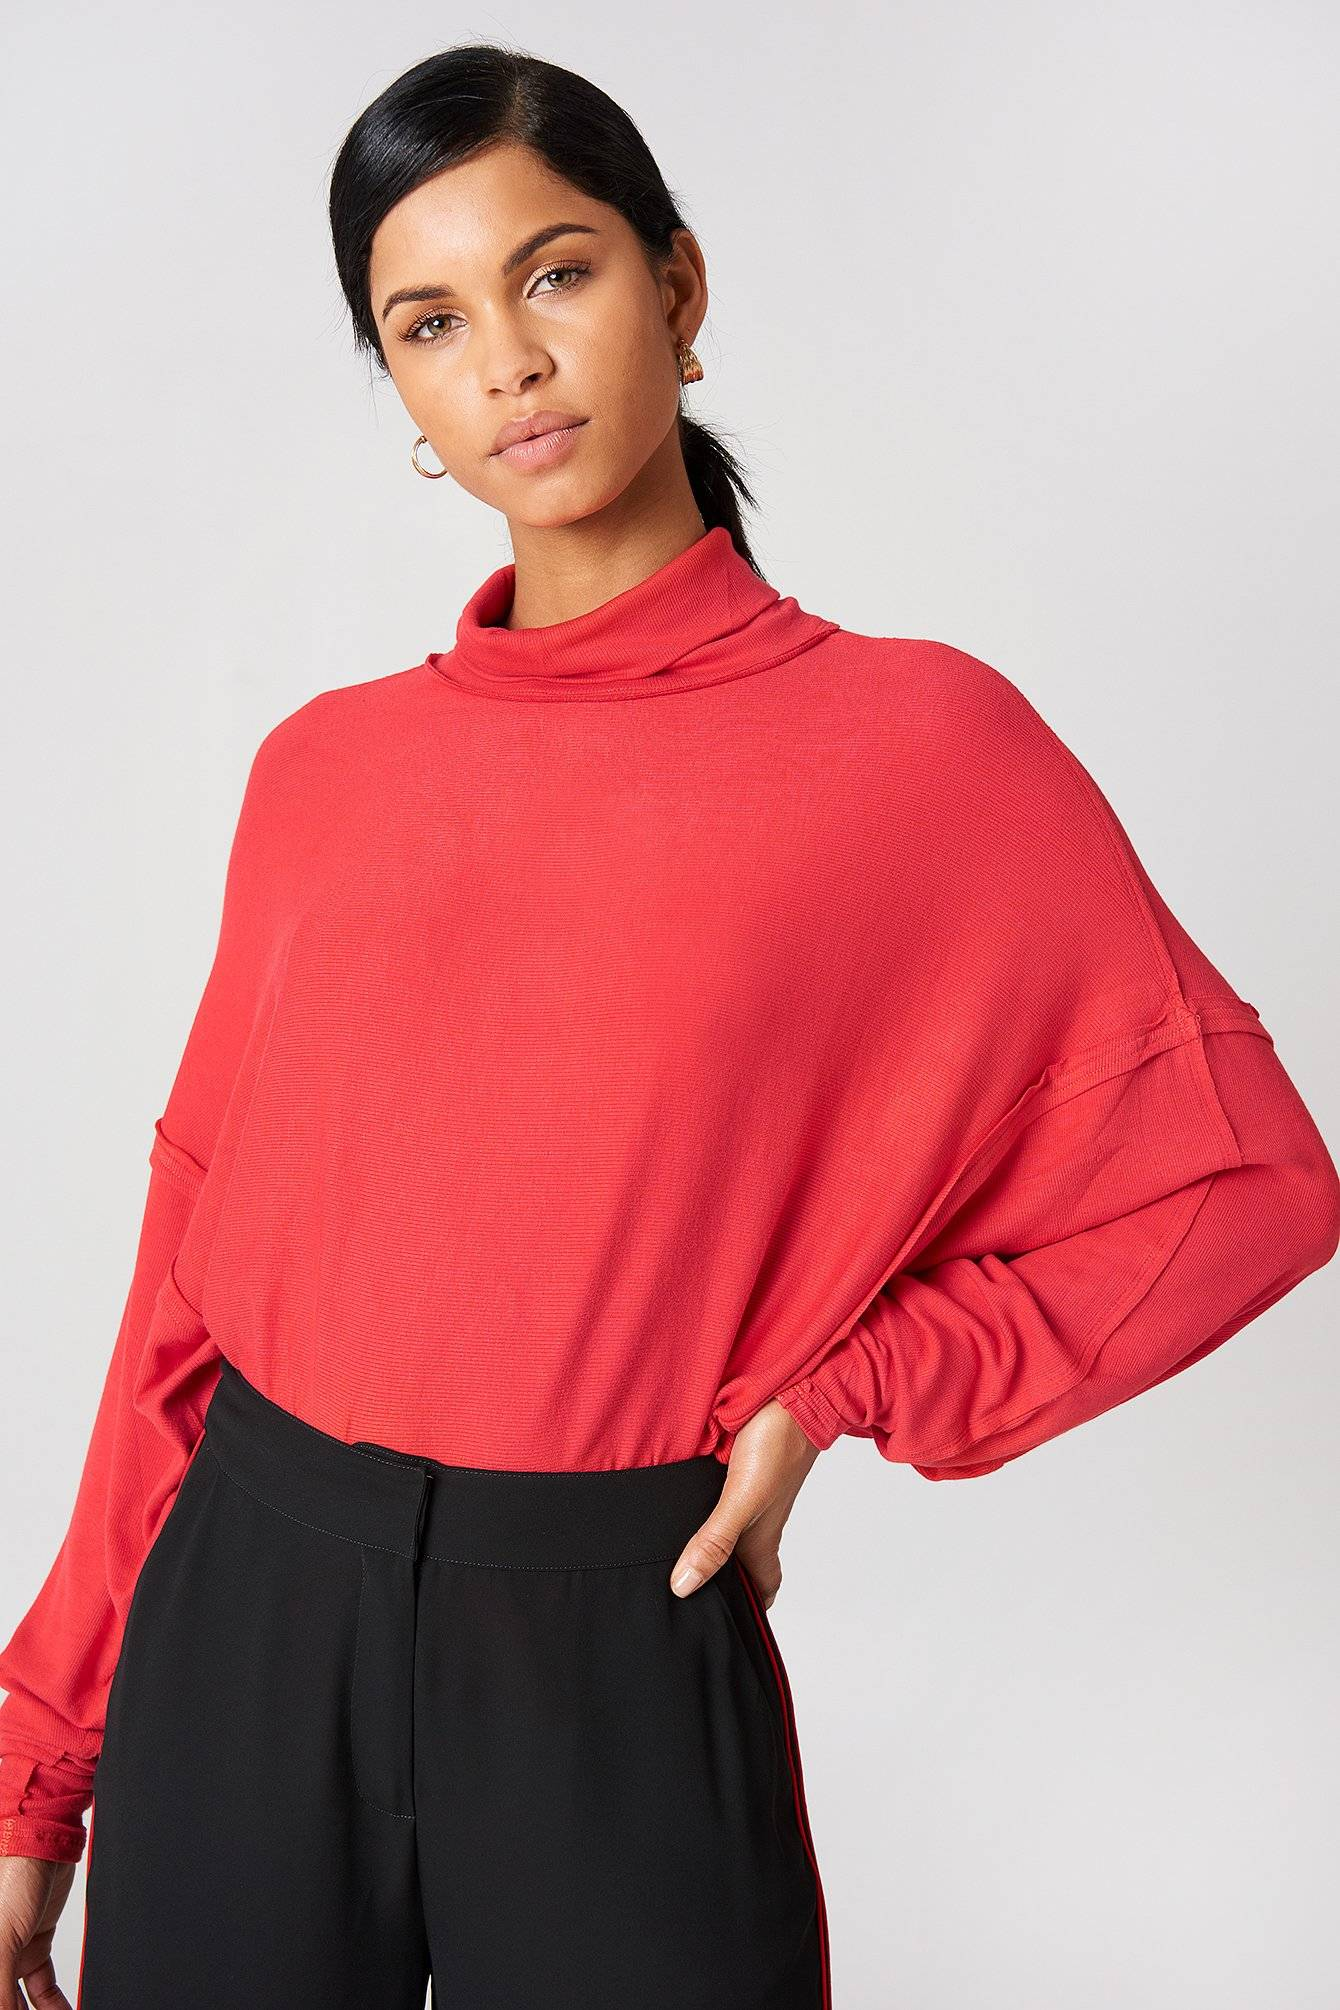 Free People Alameda Pullover - Red